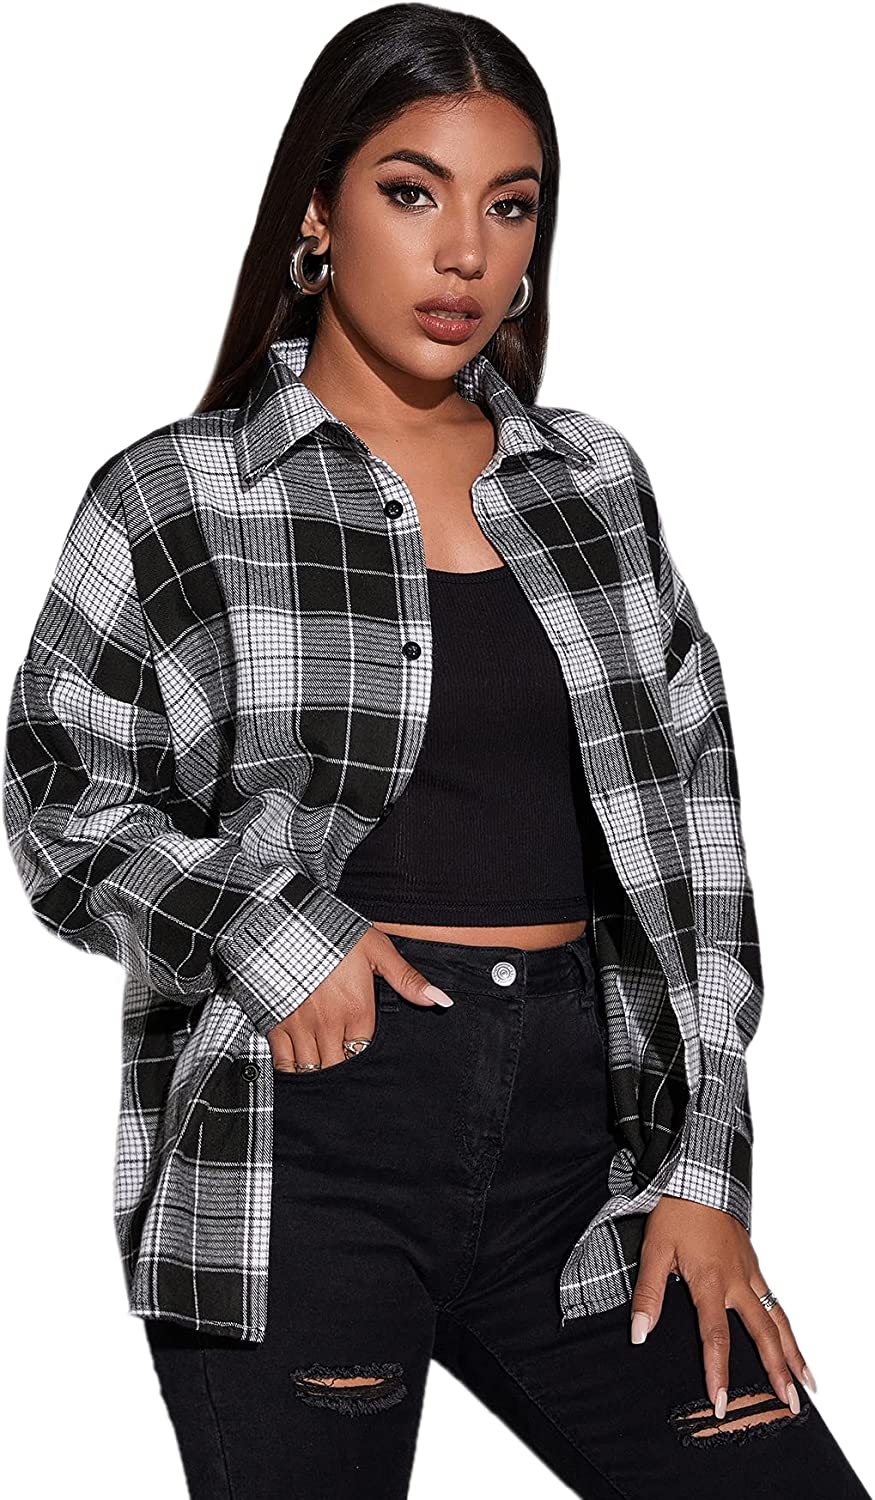 Floerns Women's Plaid Shirts Long Sleeve Curved Button Down Shirts Blouse Tops